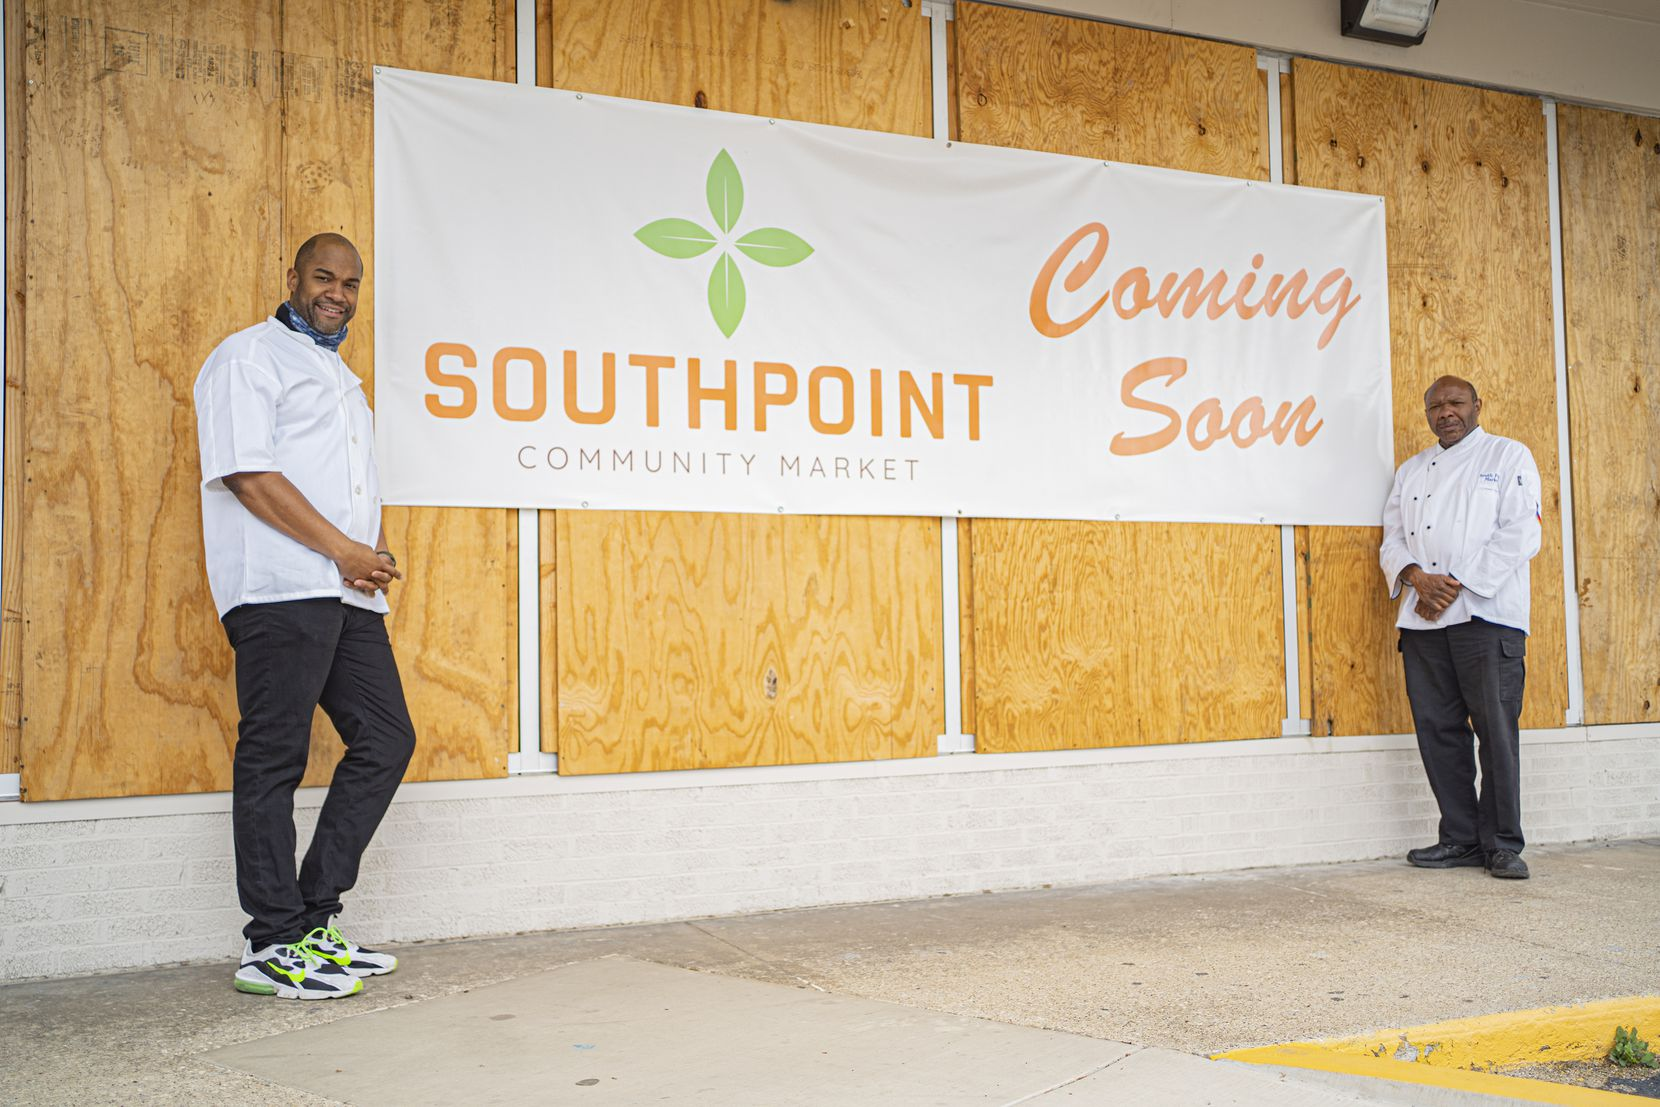 Cornerstone Church Pastor Chris Simmons (right) is opening a small non-profit grocery mart in the neighborhood. Donald Wesson can be seen to the left in this image taken on April 7,  2021 in Dallas, Texas.